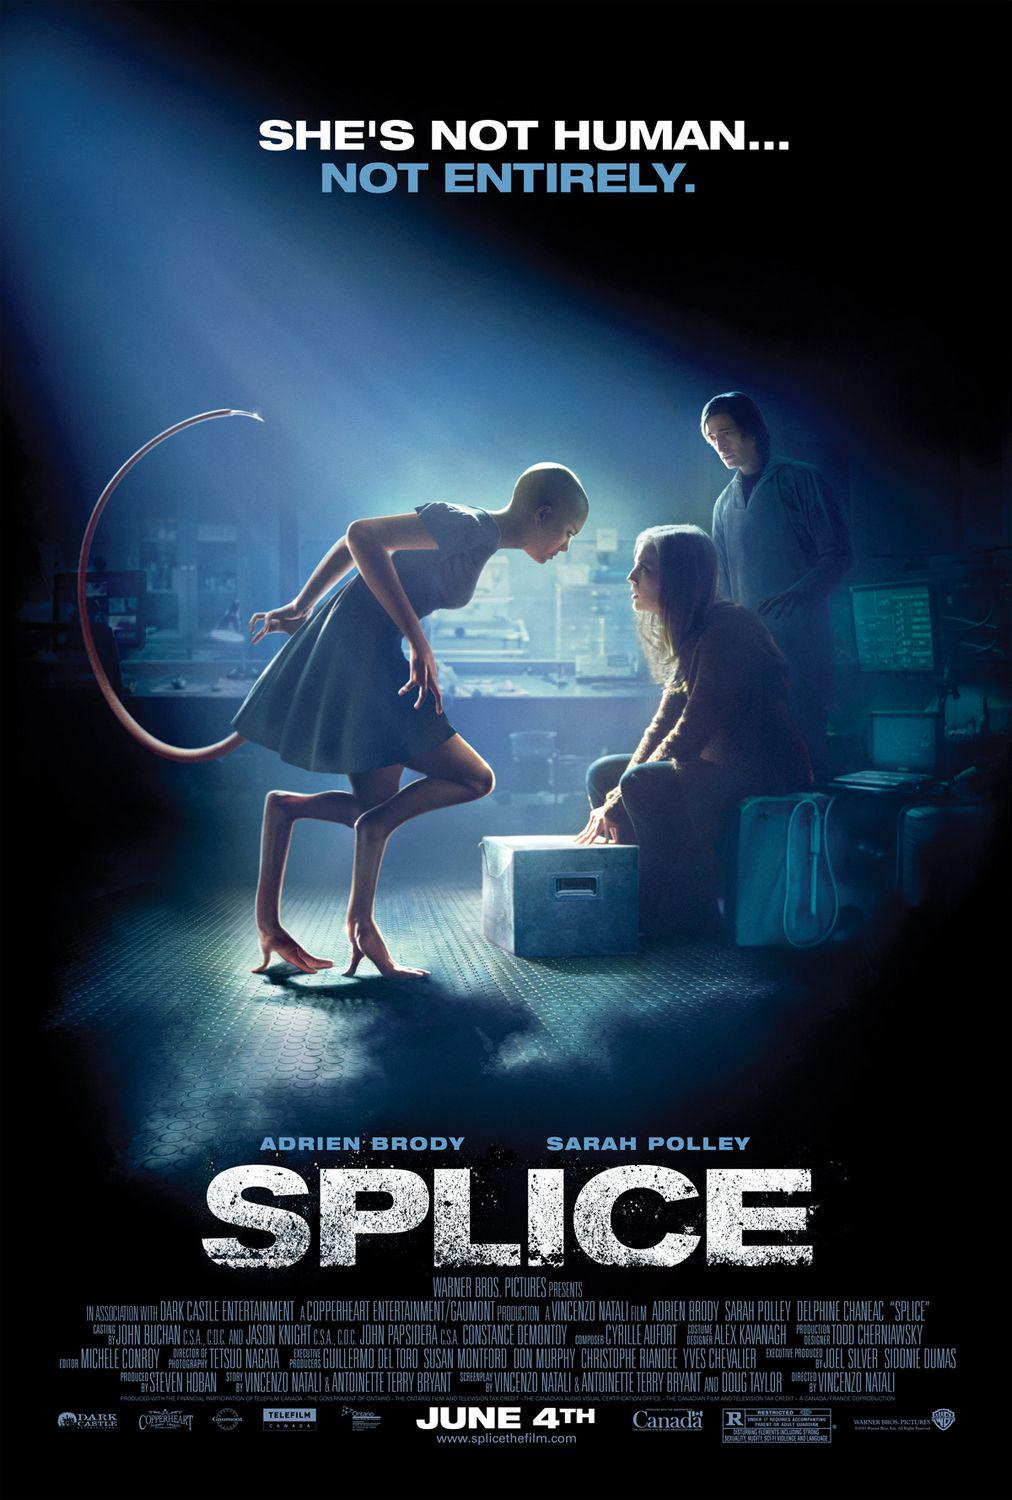 Splice - she's not human, not entirely - Adrien Brody - Sarah Polley Delphine Chaneac - film horror scifi science fisction fantascienza poster